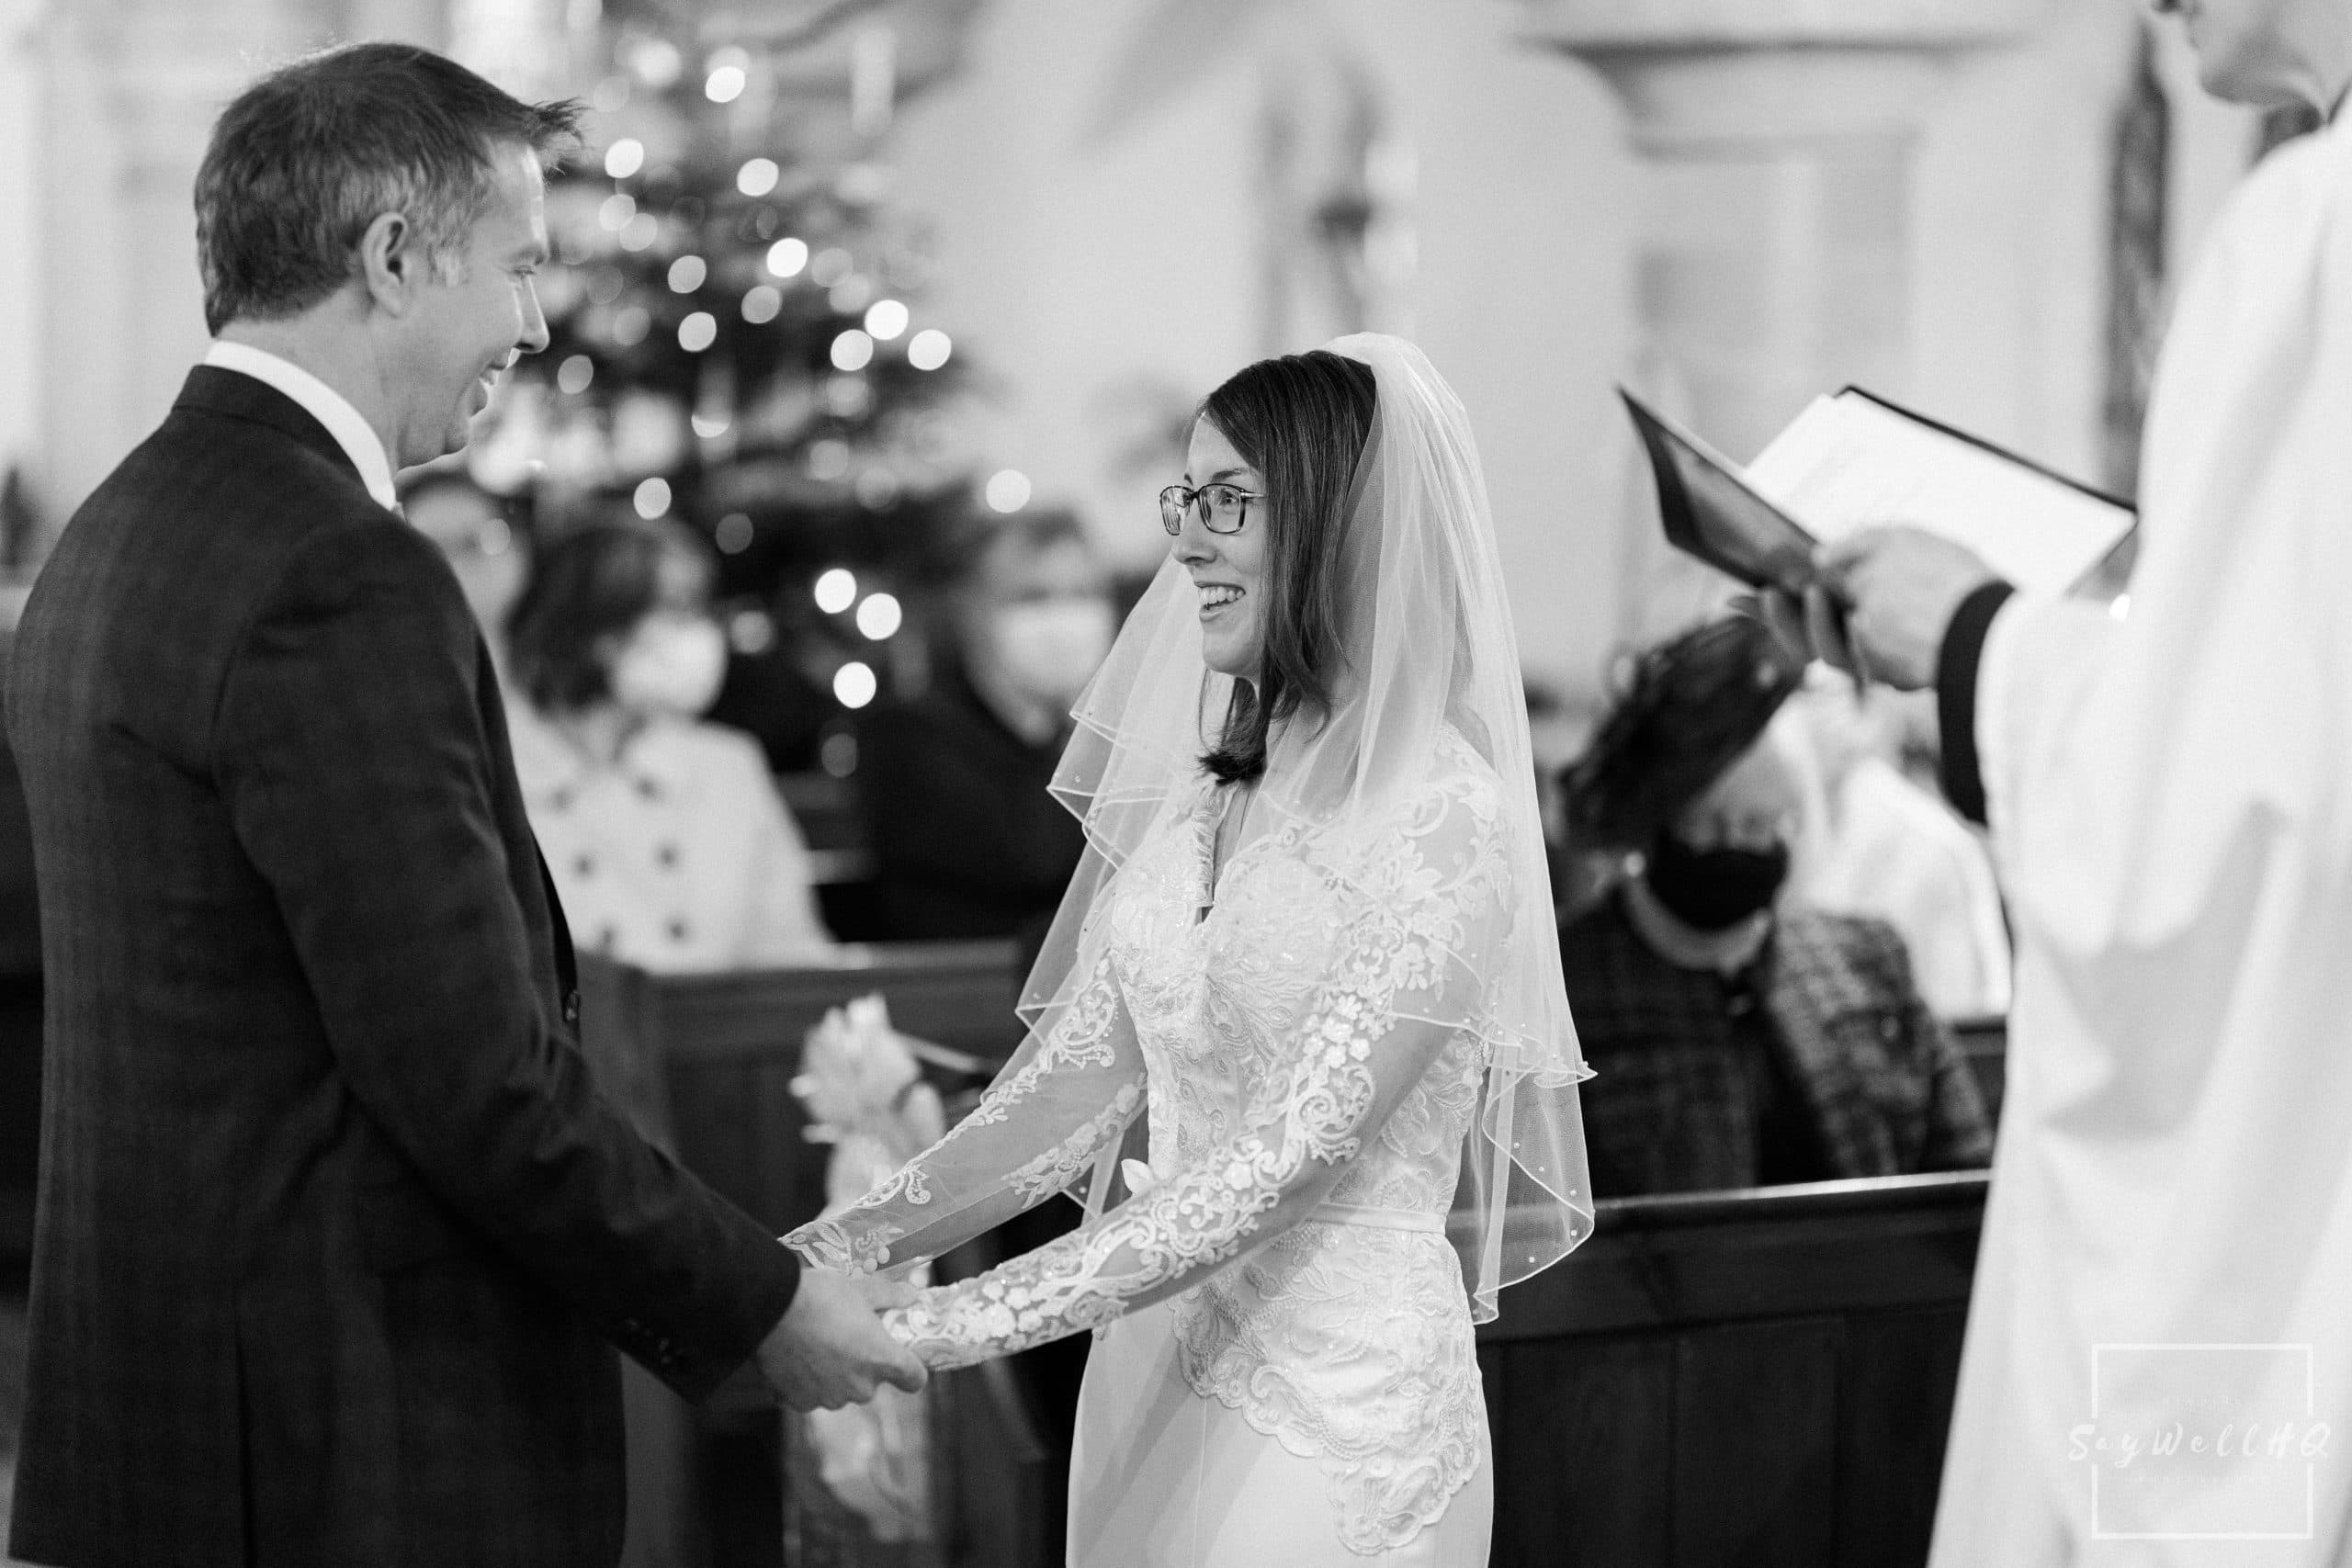 Bride and Groom exchange vows at their wedding at St. Helena Church in Thoroton - Vale of Belvoir wedding photography